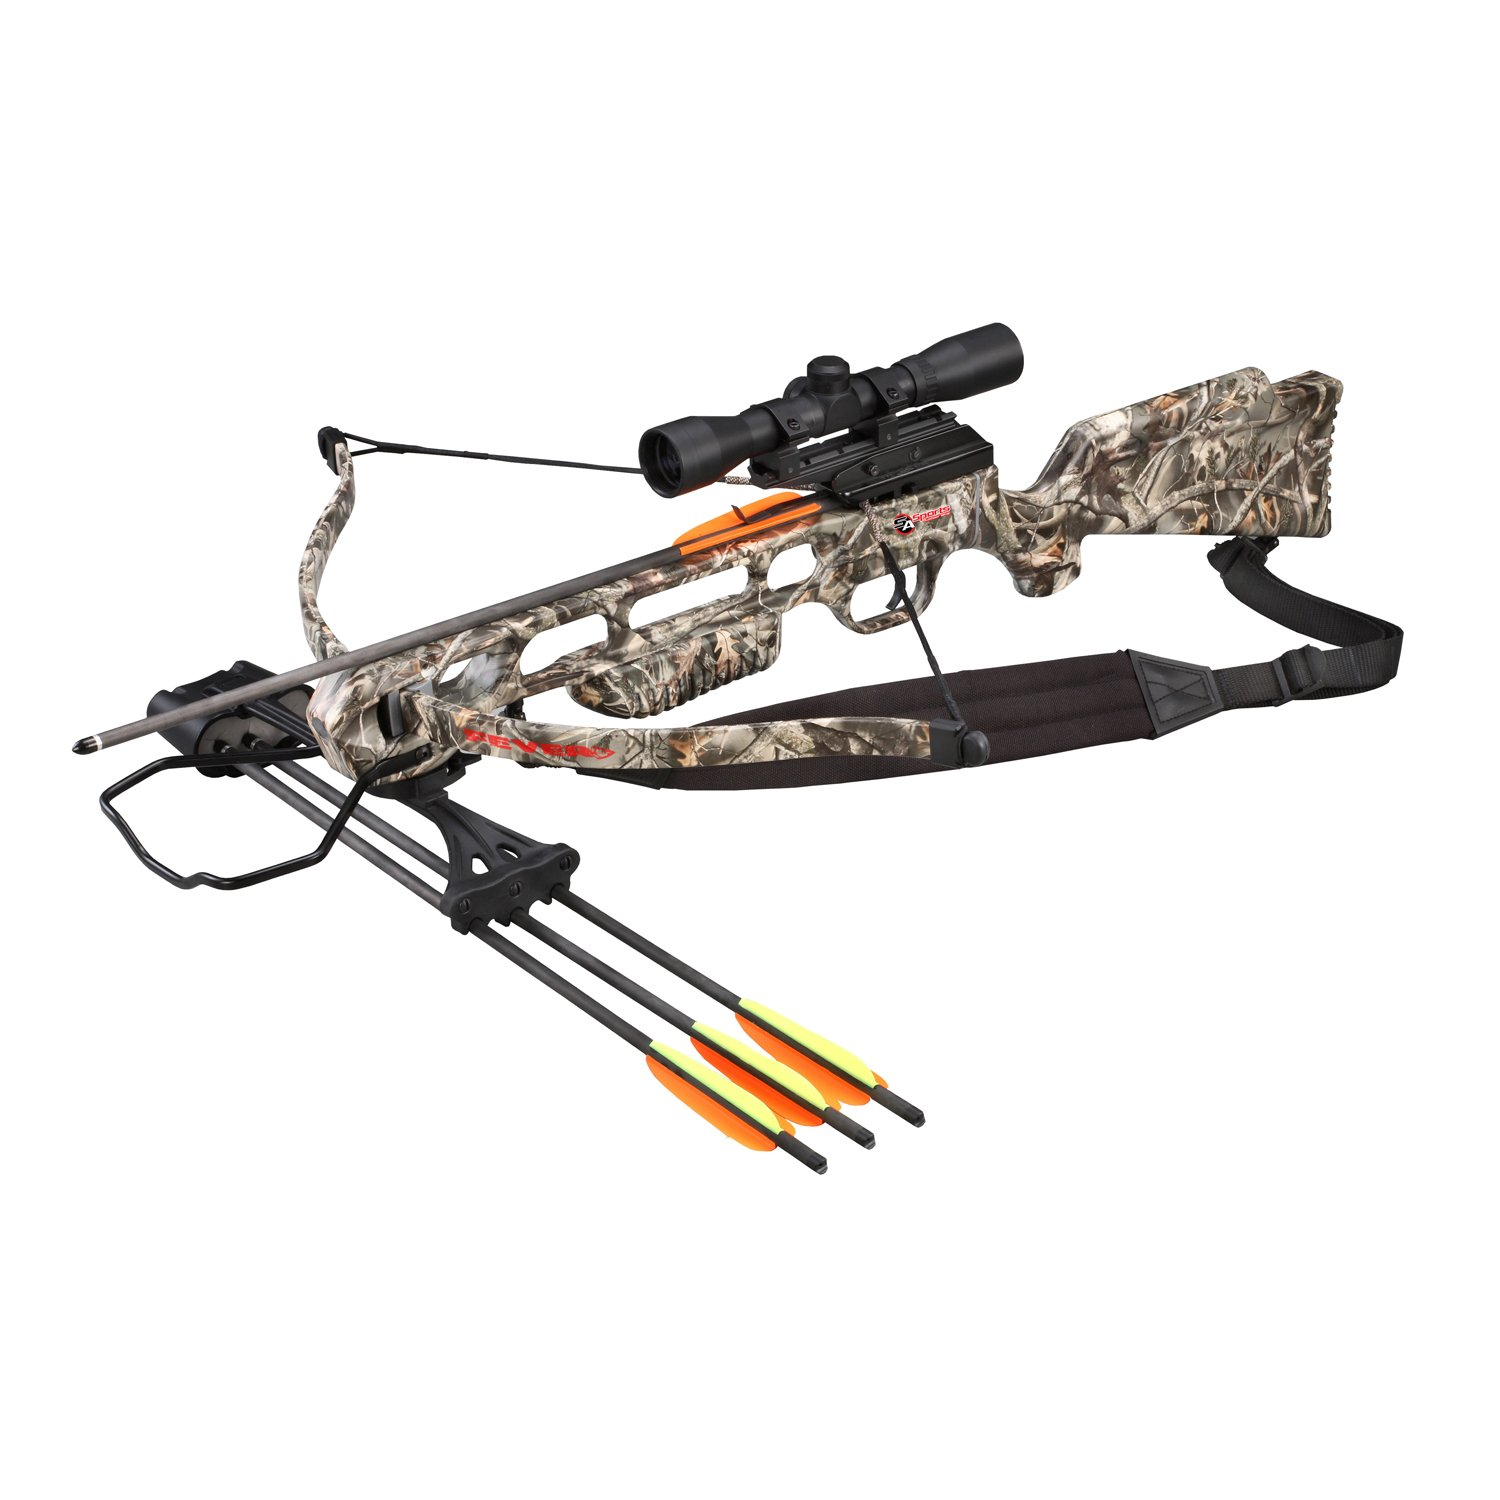 The Best Crossbow 4